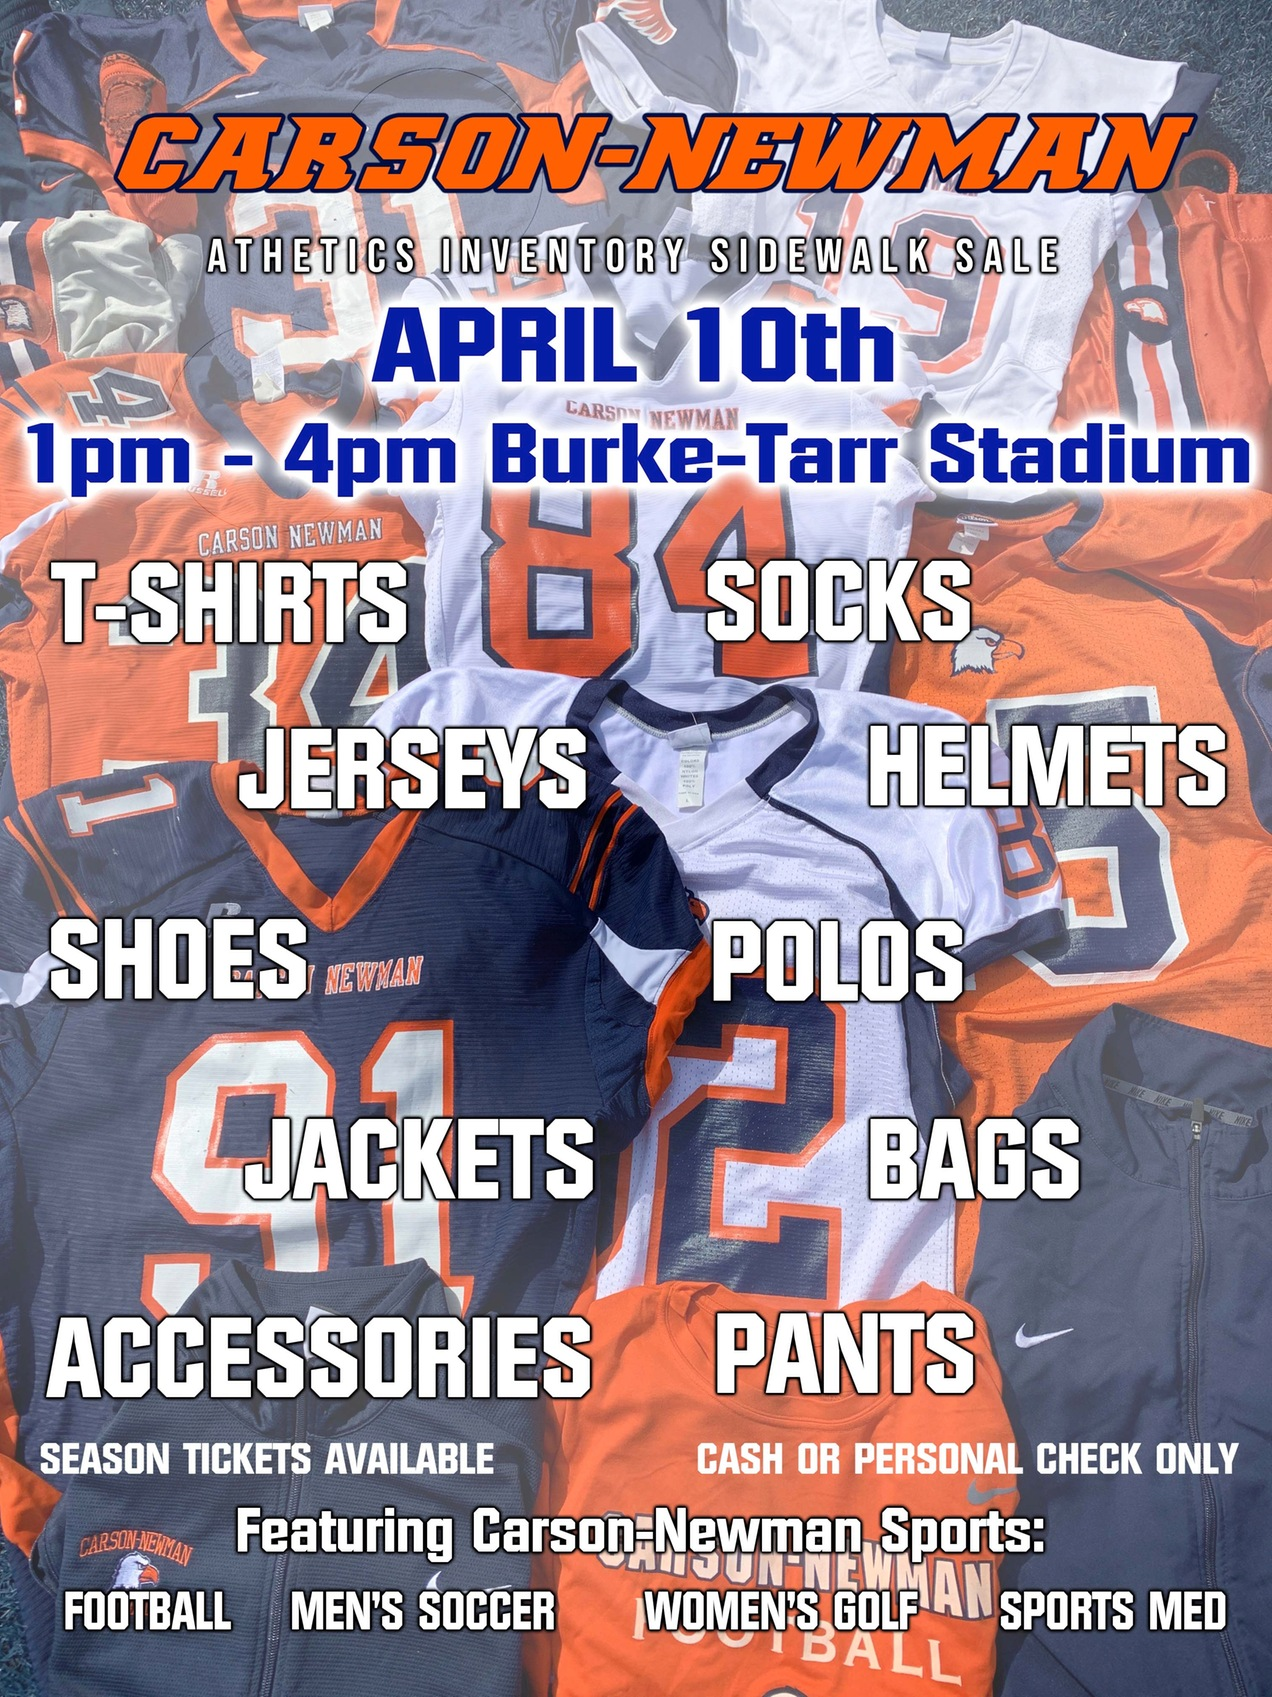 Athletic Department sidewalk sale set for April 10